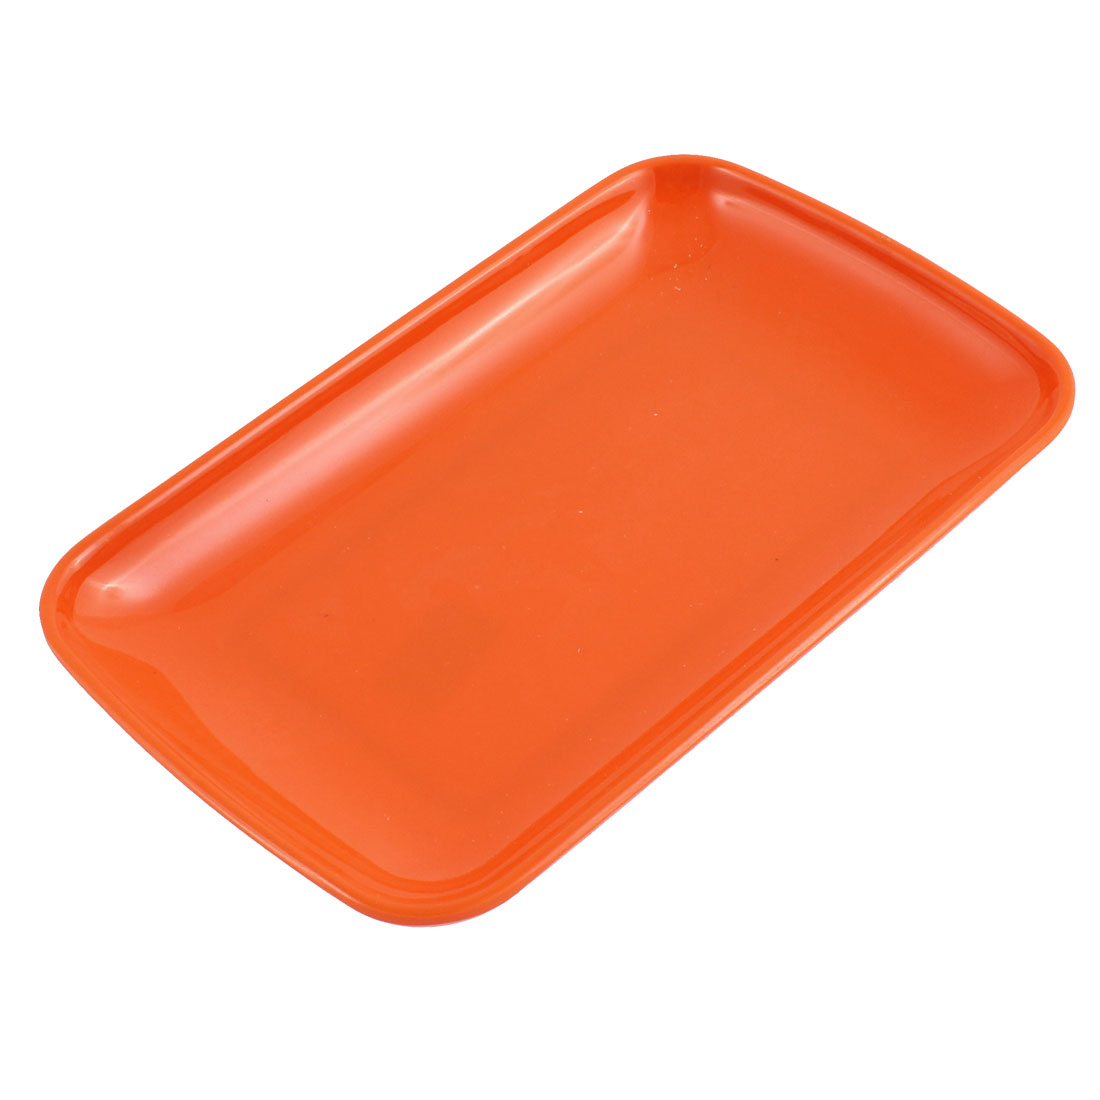 Home Kitchen Plastic Rectangle Design Vermicelli Food Plate Dish Container Orangered